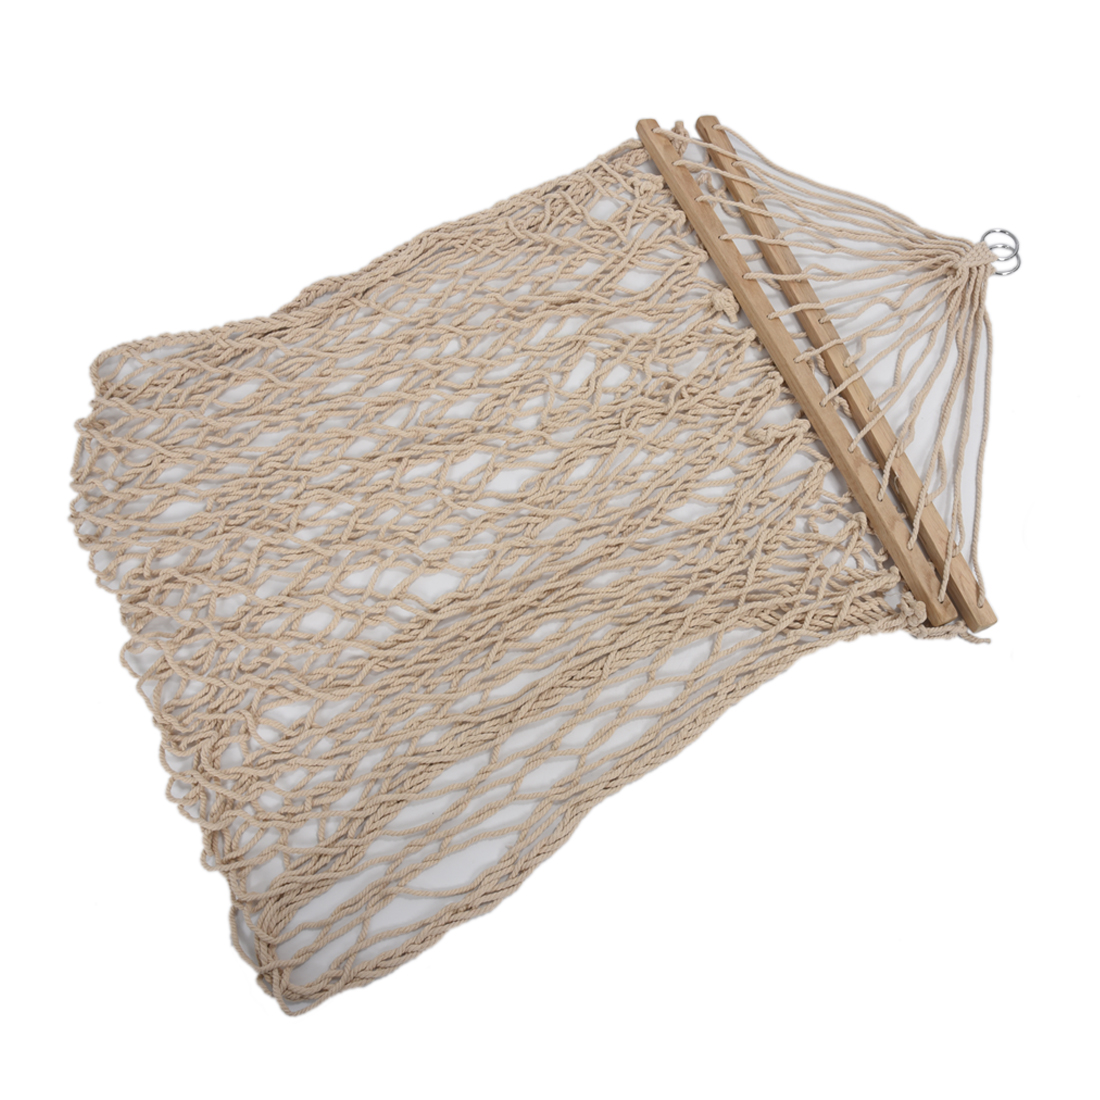 White Cotton Rope Swing Hammock Hanging on the Porch or on a Beach anouk live on the beach scheveningen